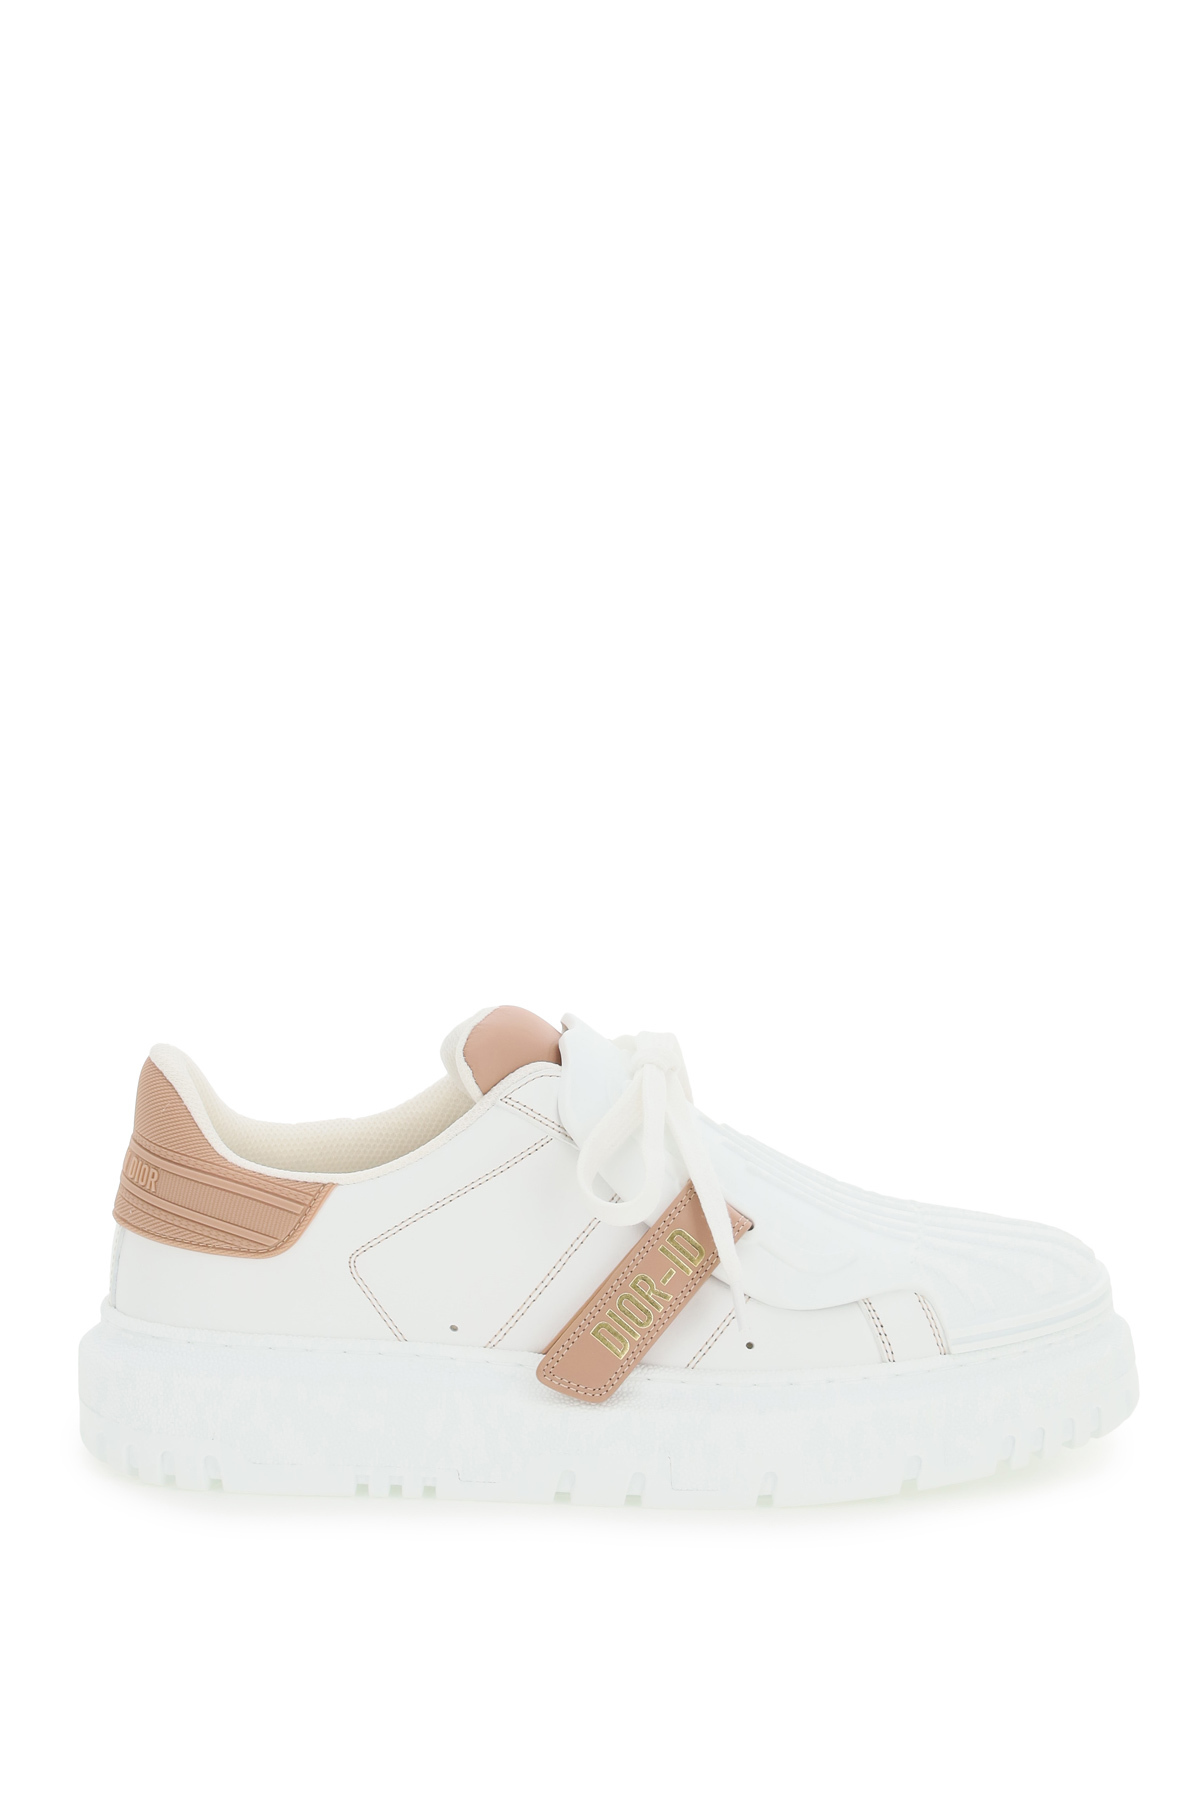 Dior sneakers dior-id